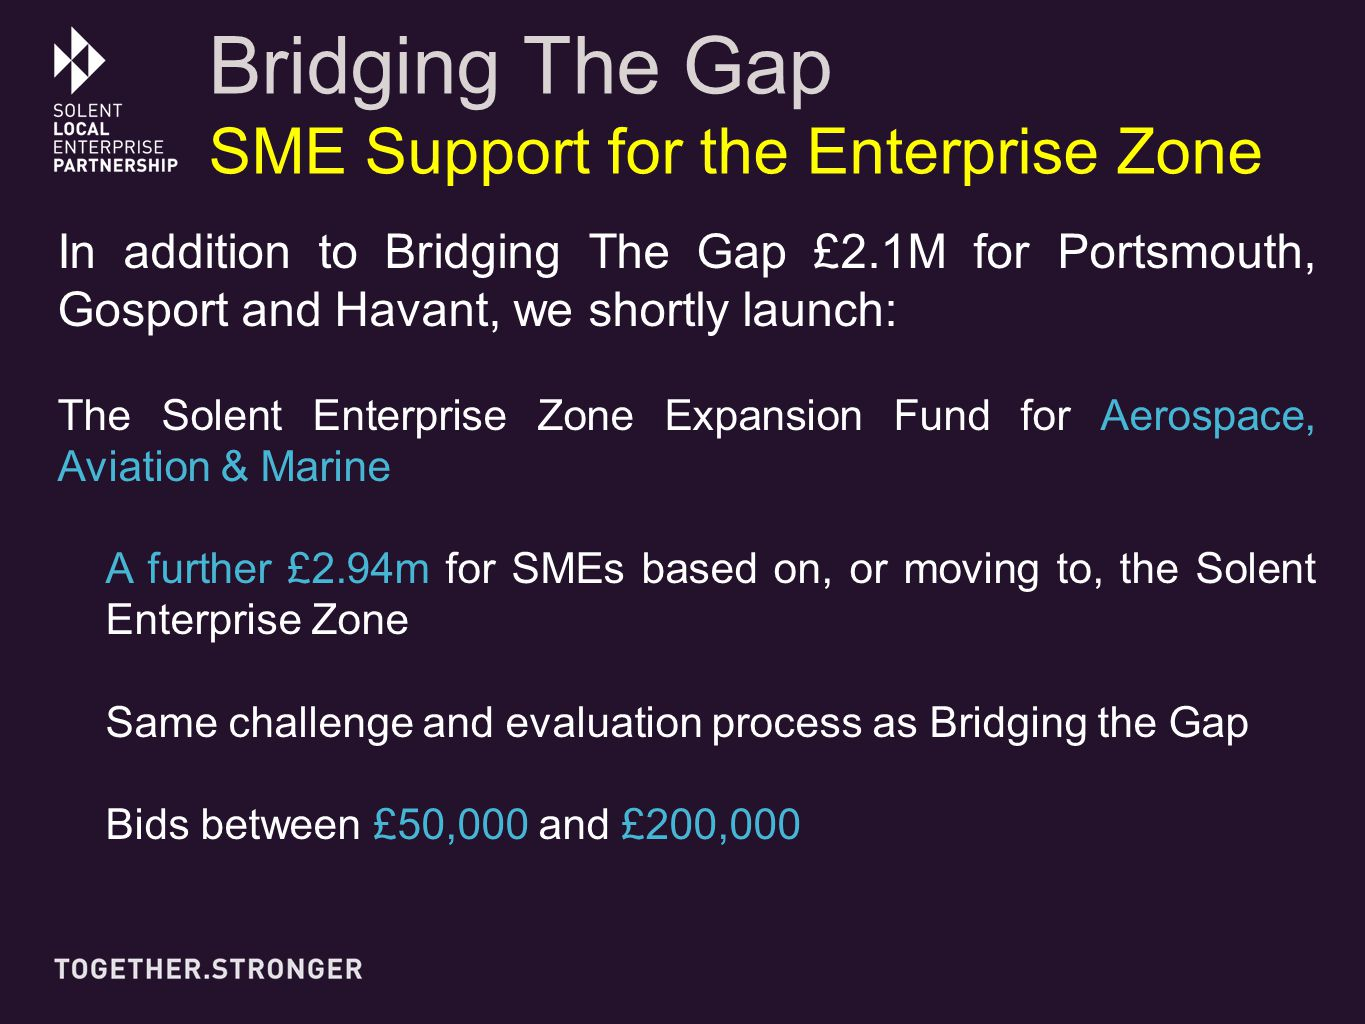 In addition to Bridging The Gap £2.1M for Portsmouth, Gosport and Havant, we shortly launch: The Solent Enterprise Zone Expansion Fund for Aerospace, Aviation & Marine A further £2.94m for SMEs based on, or moving to, the Solent Enterprise Zone Same challenge and evaluation process as Bridging the Gap Bids between £50,000 and £200,000 Bridging The Gap SME Support for the Enterprise Zone